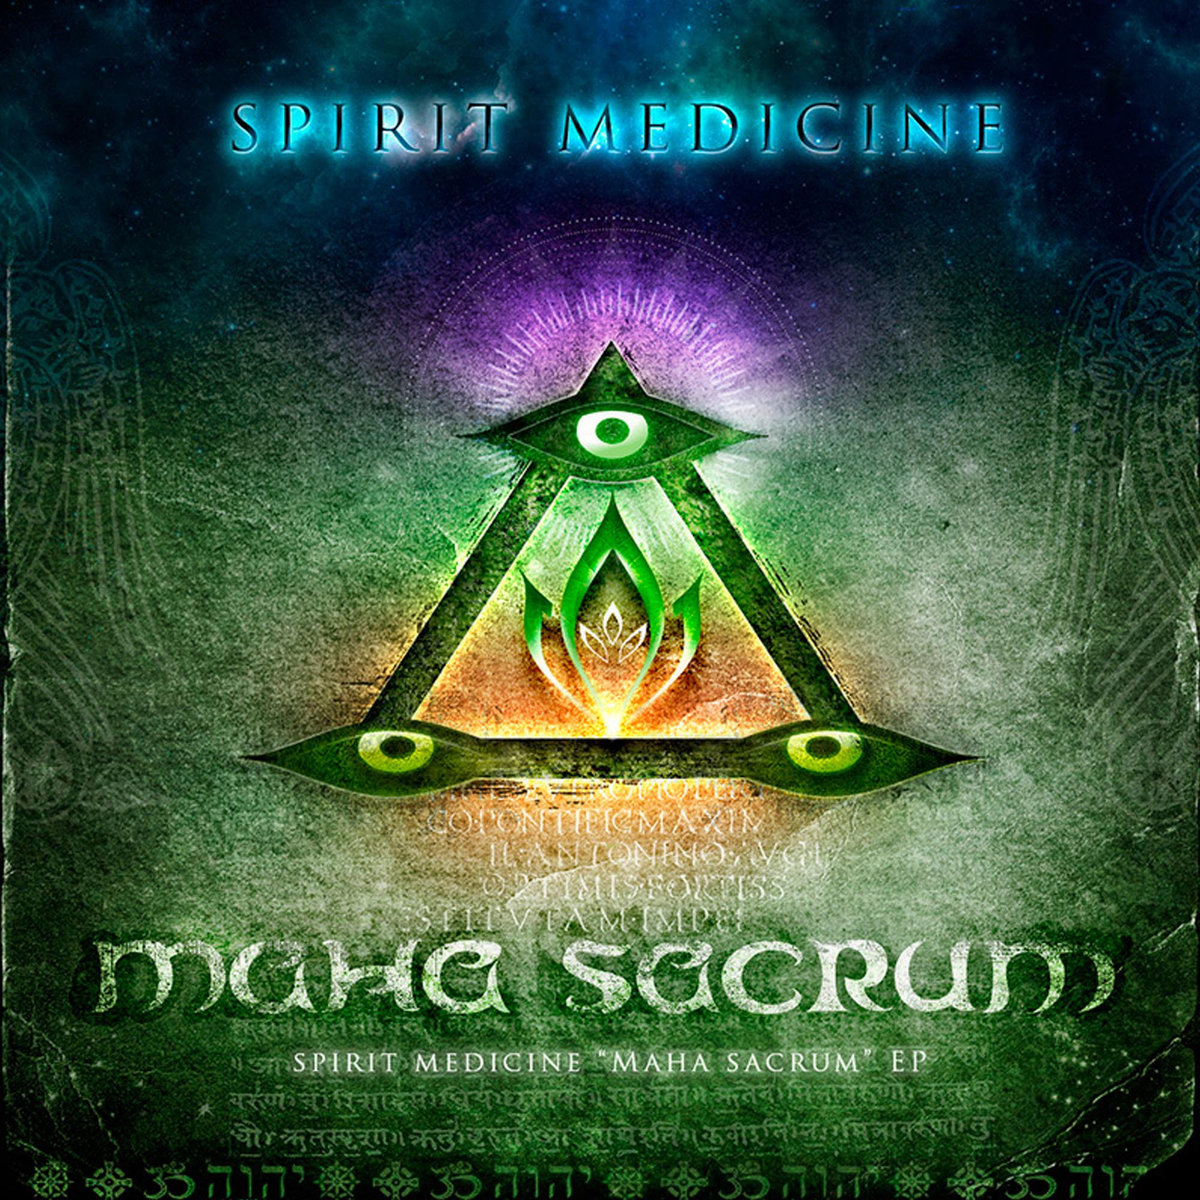 Spirit Medicine - Christ as Kalki @ 'Maha Sacrum' album (2013, ambient)